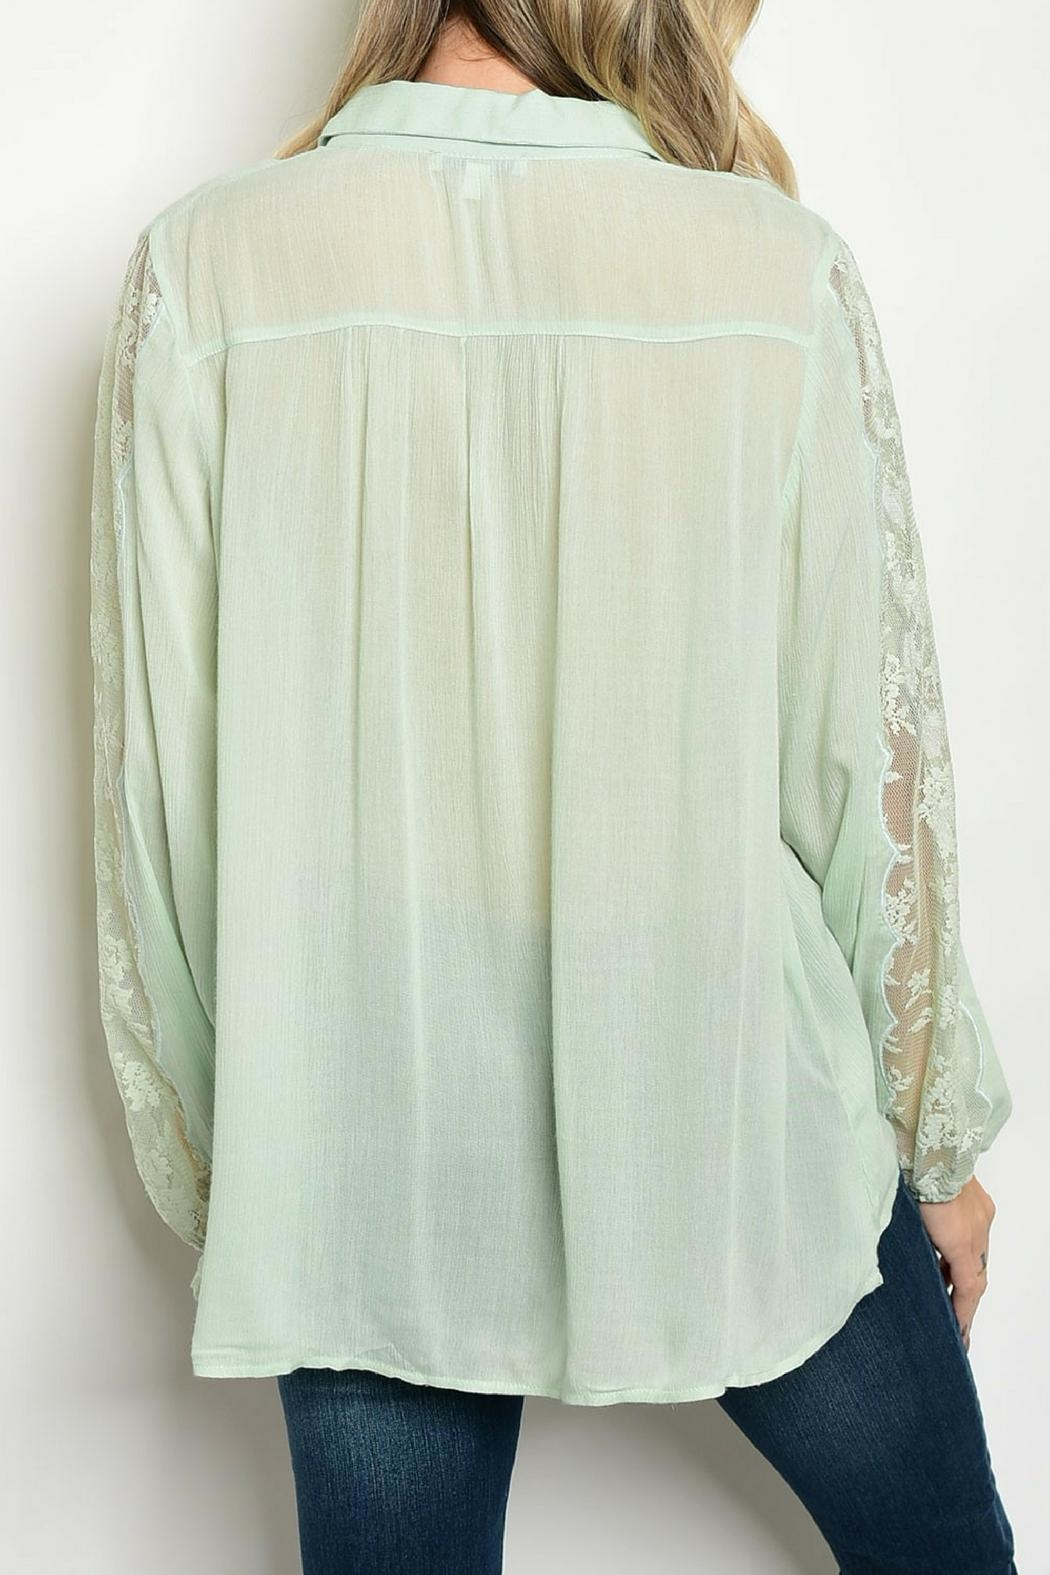 Tassels N Lace Mint Lace Top - Front Full Image